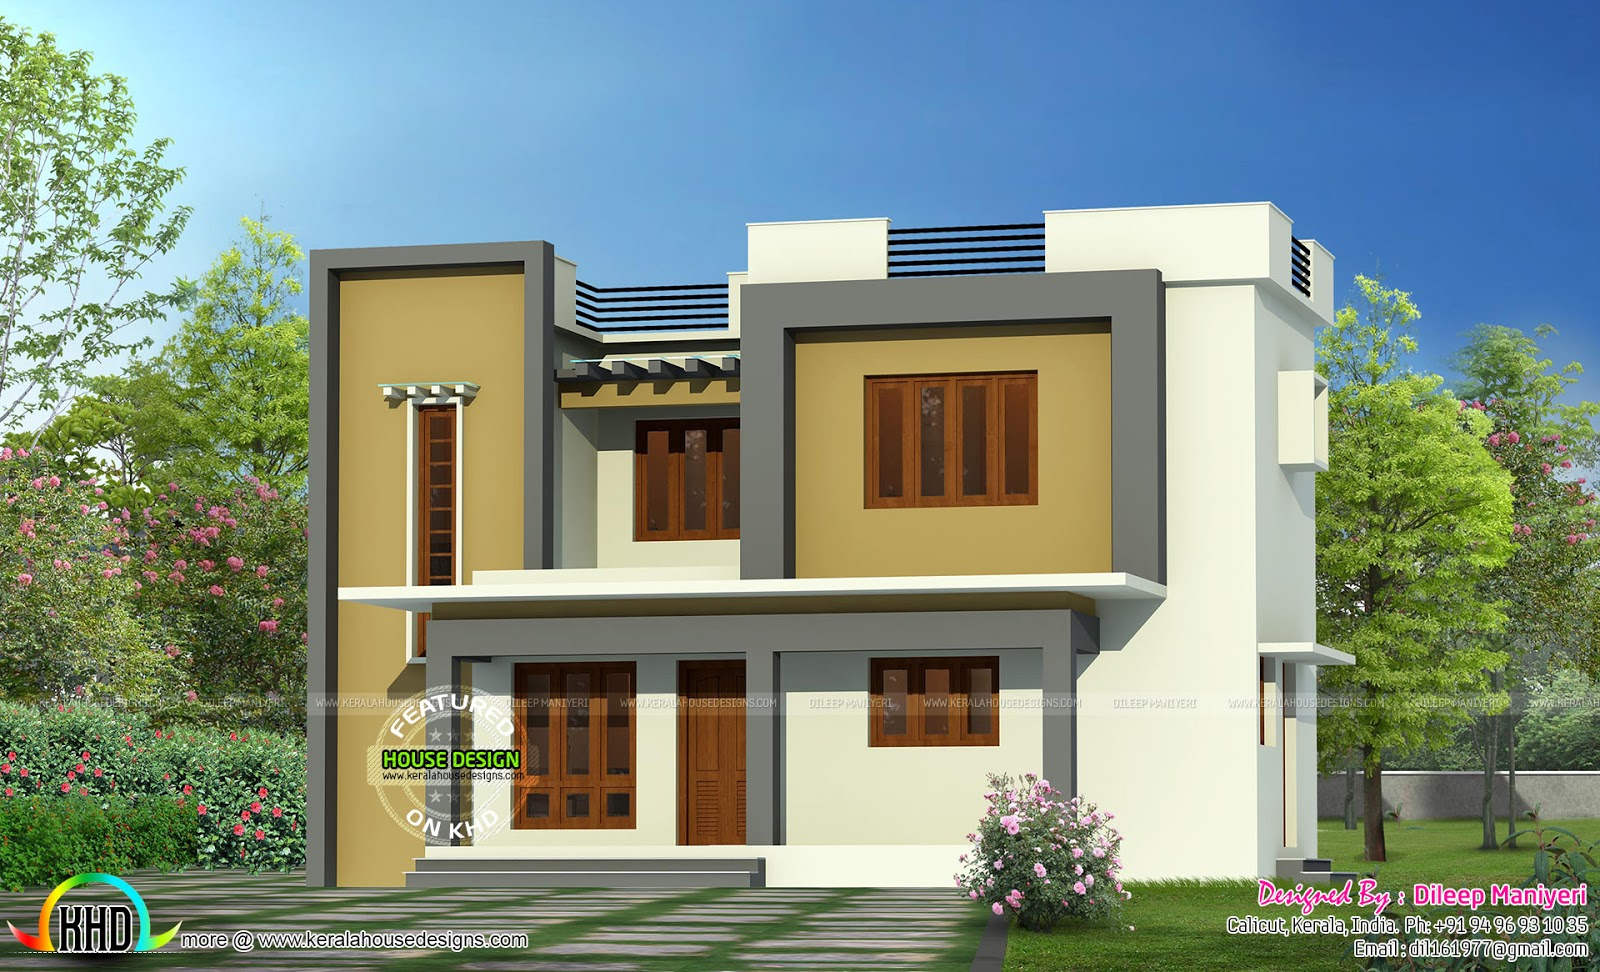 Roof Floor Elevation : Simple flat roof home architecture kerala design